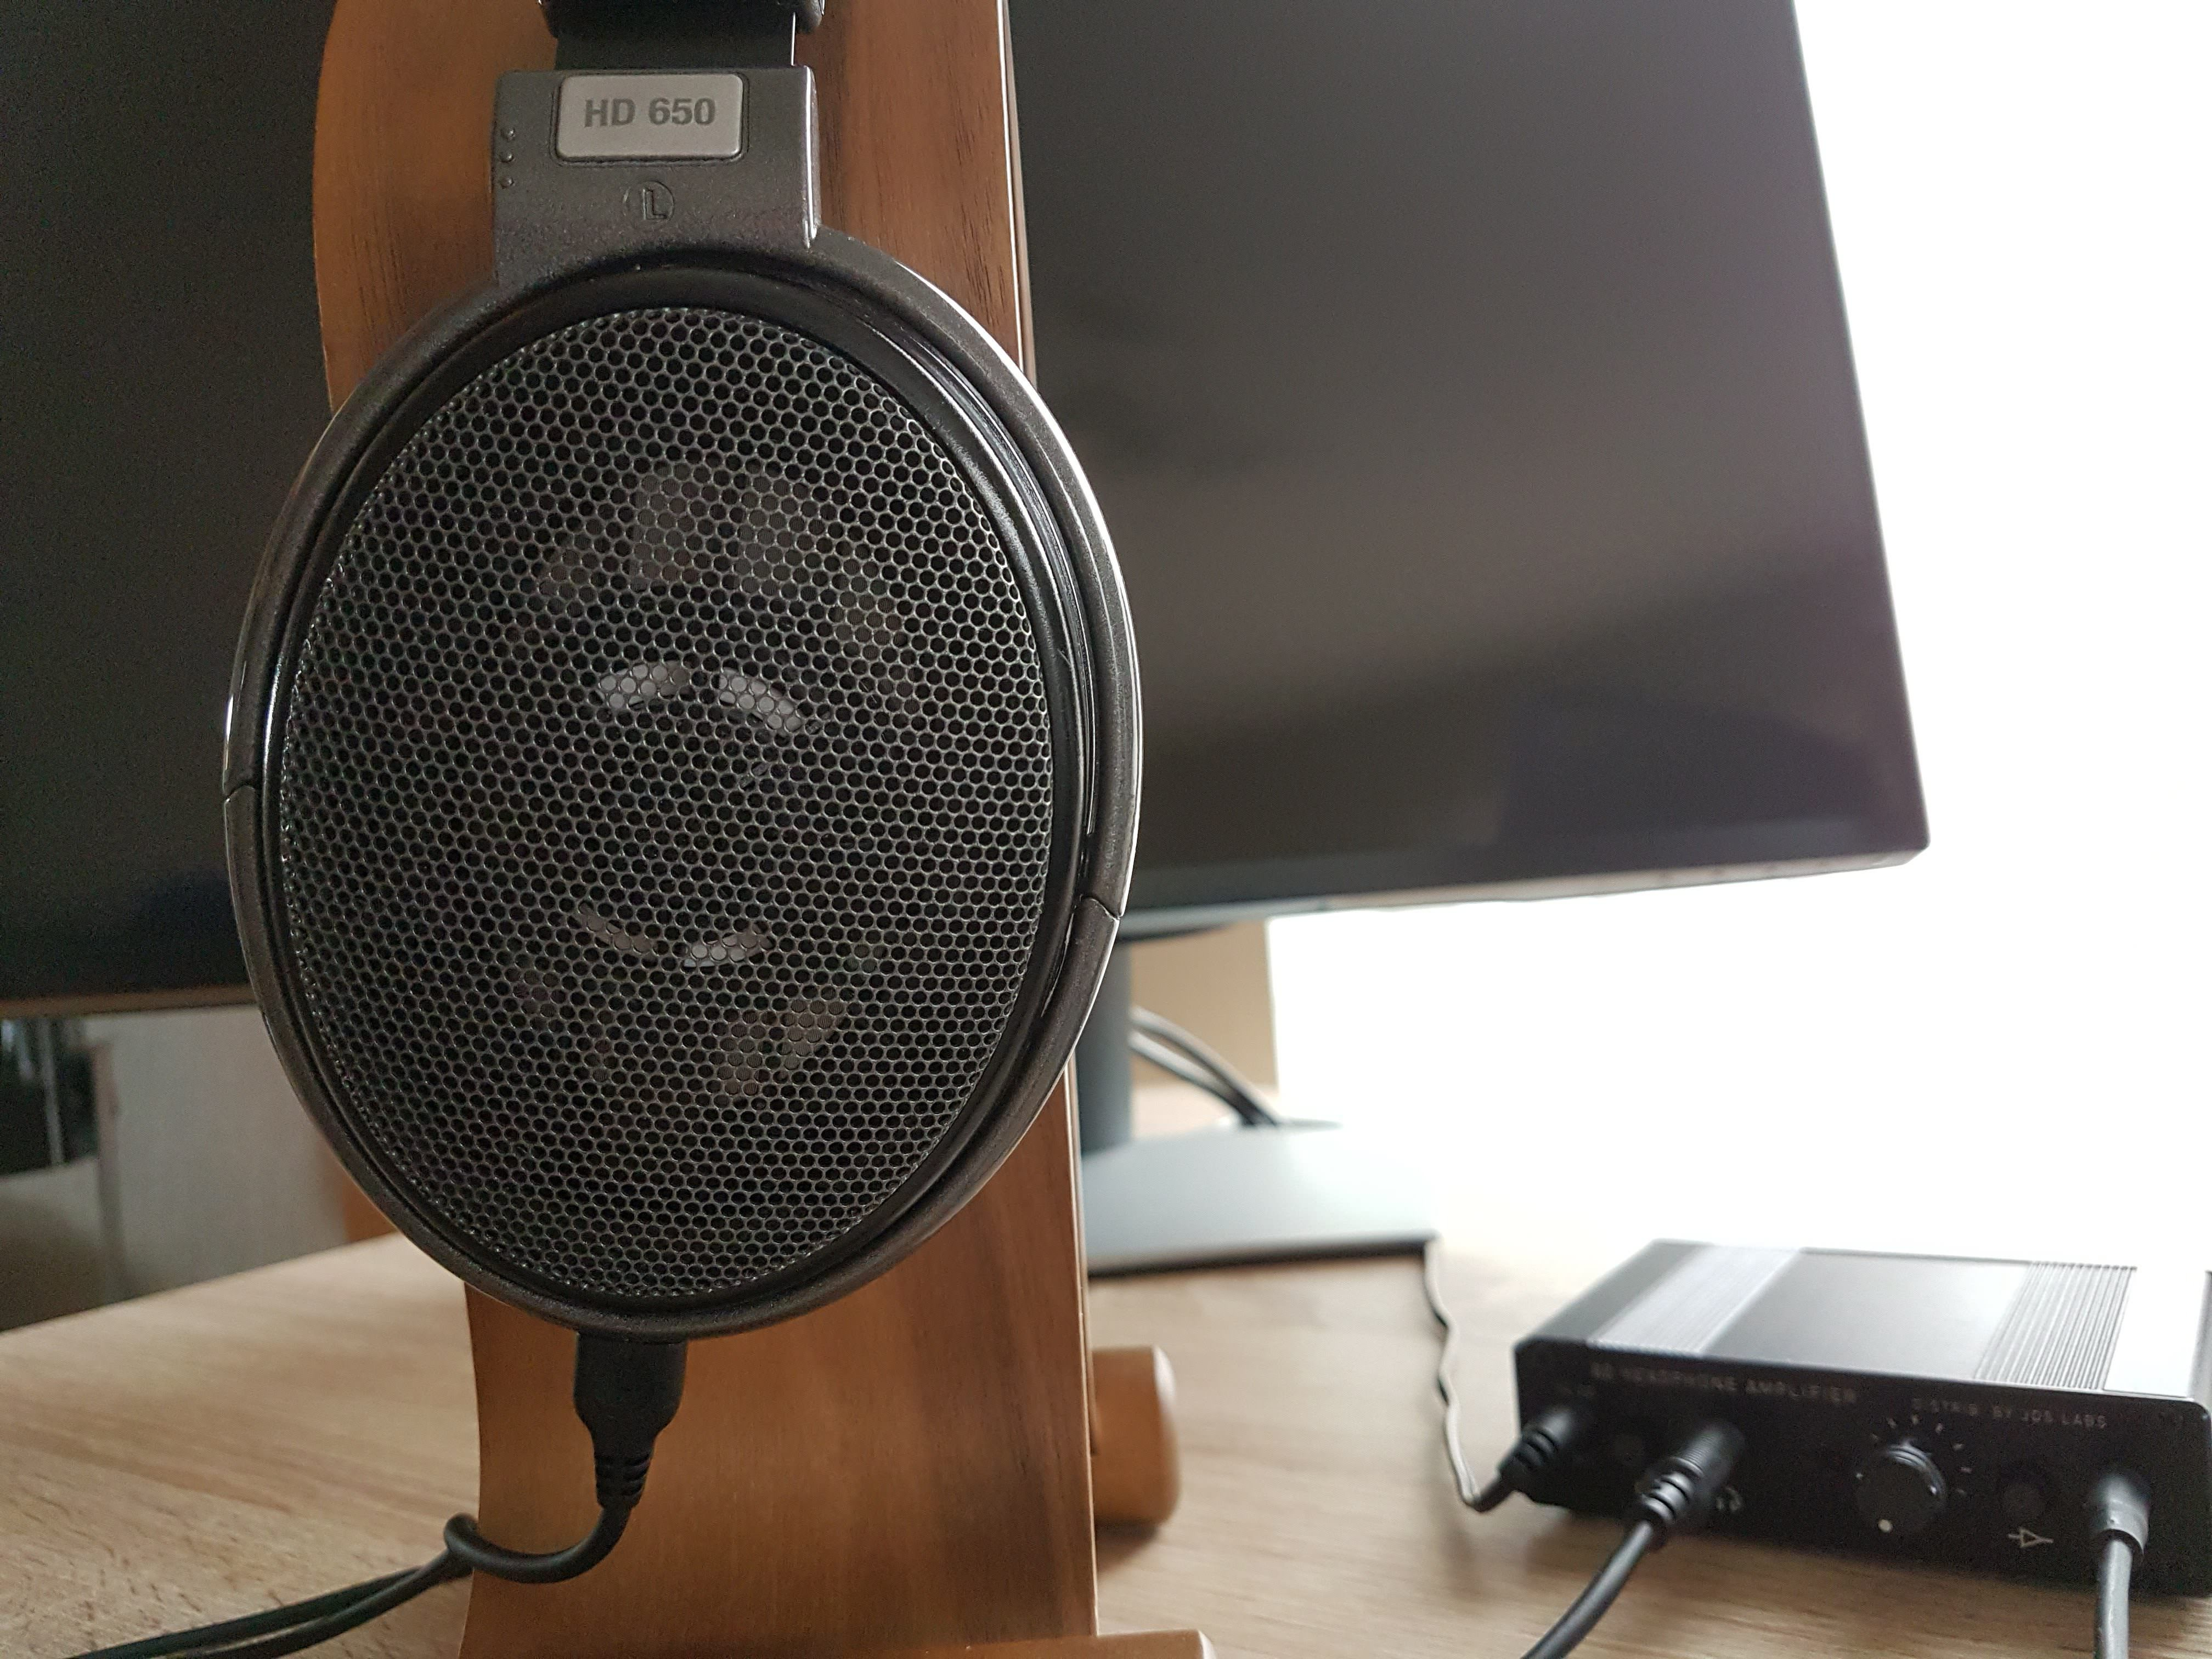 HD650 placed on a headphone stand